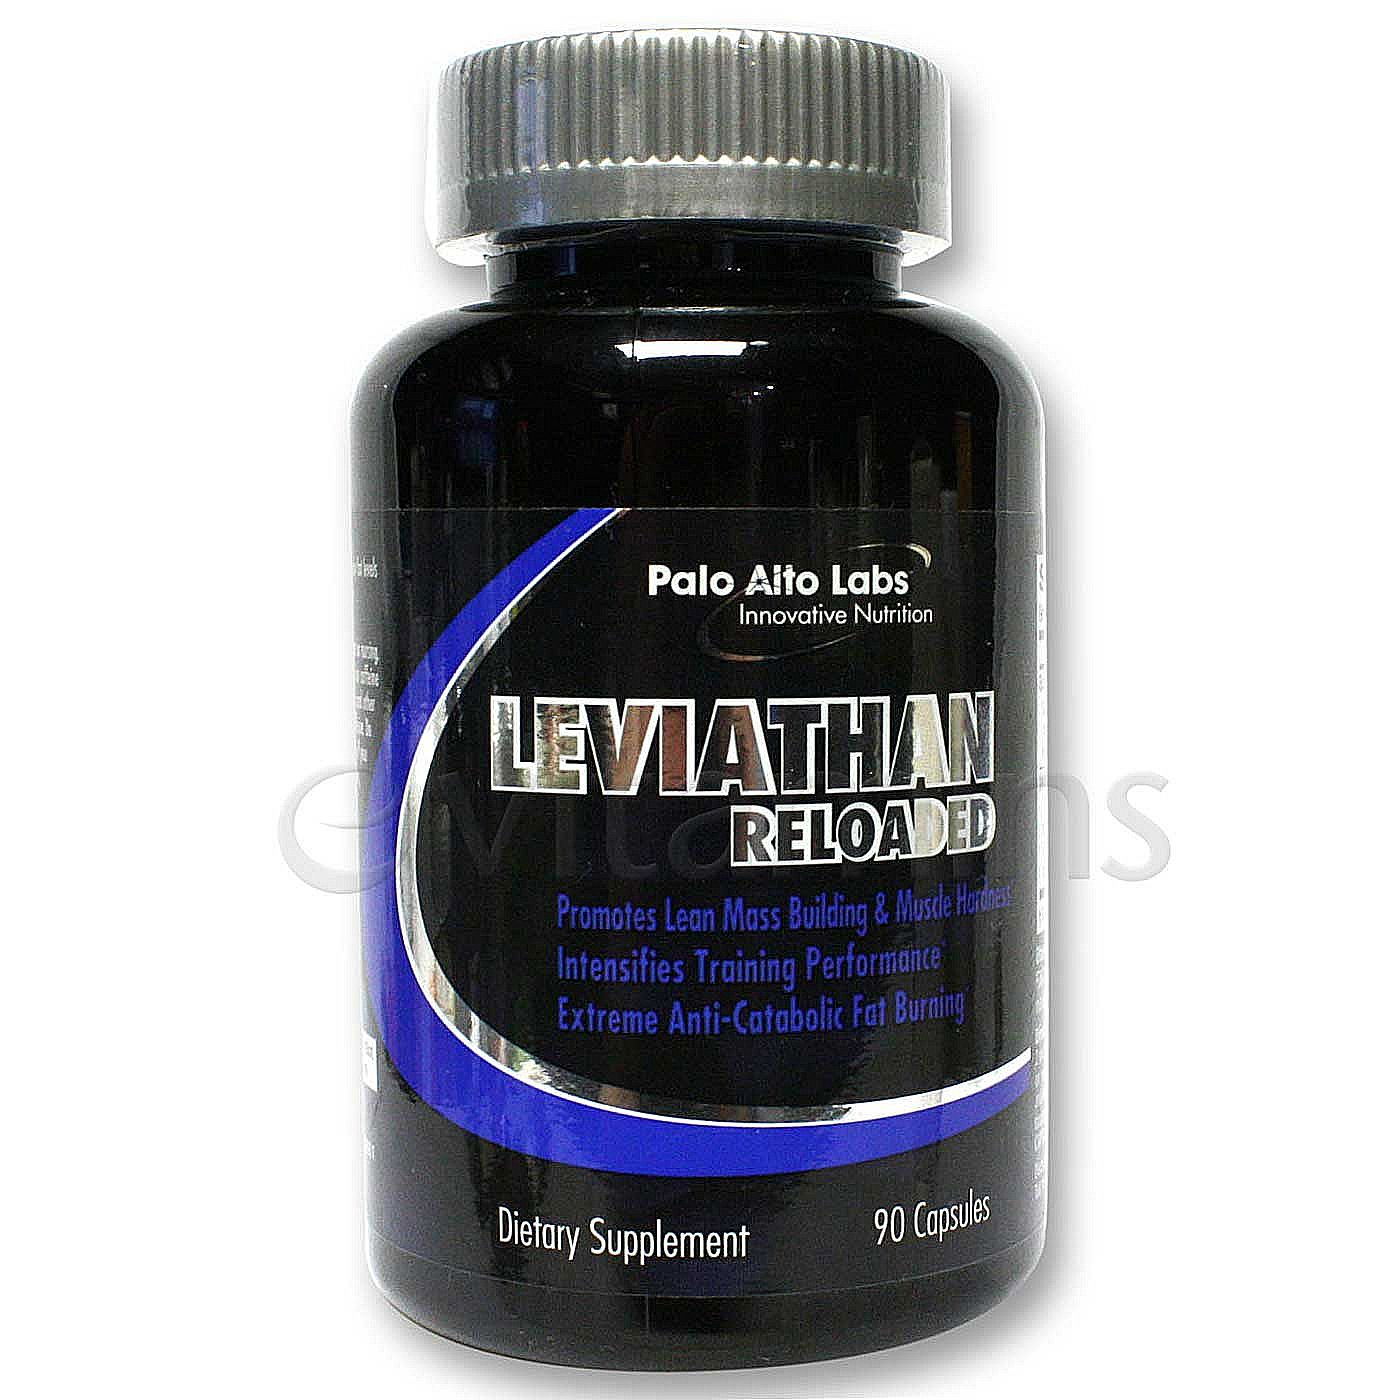 Palo Alto Labs Leviathan Reloaded 90 Capsules Ultimate Nutrition Ultra Ripped Faf Caps Capsul Hover To Zoom